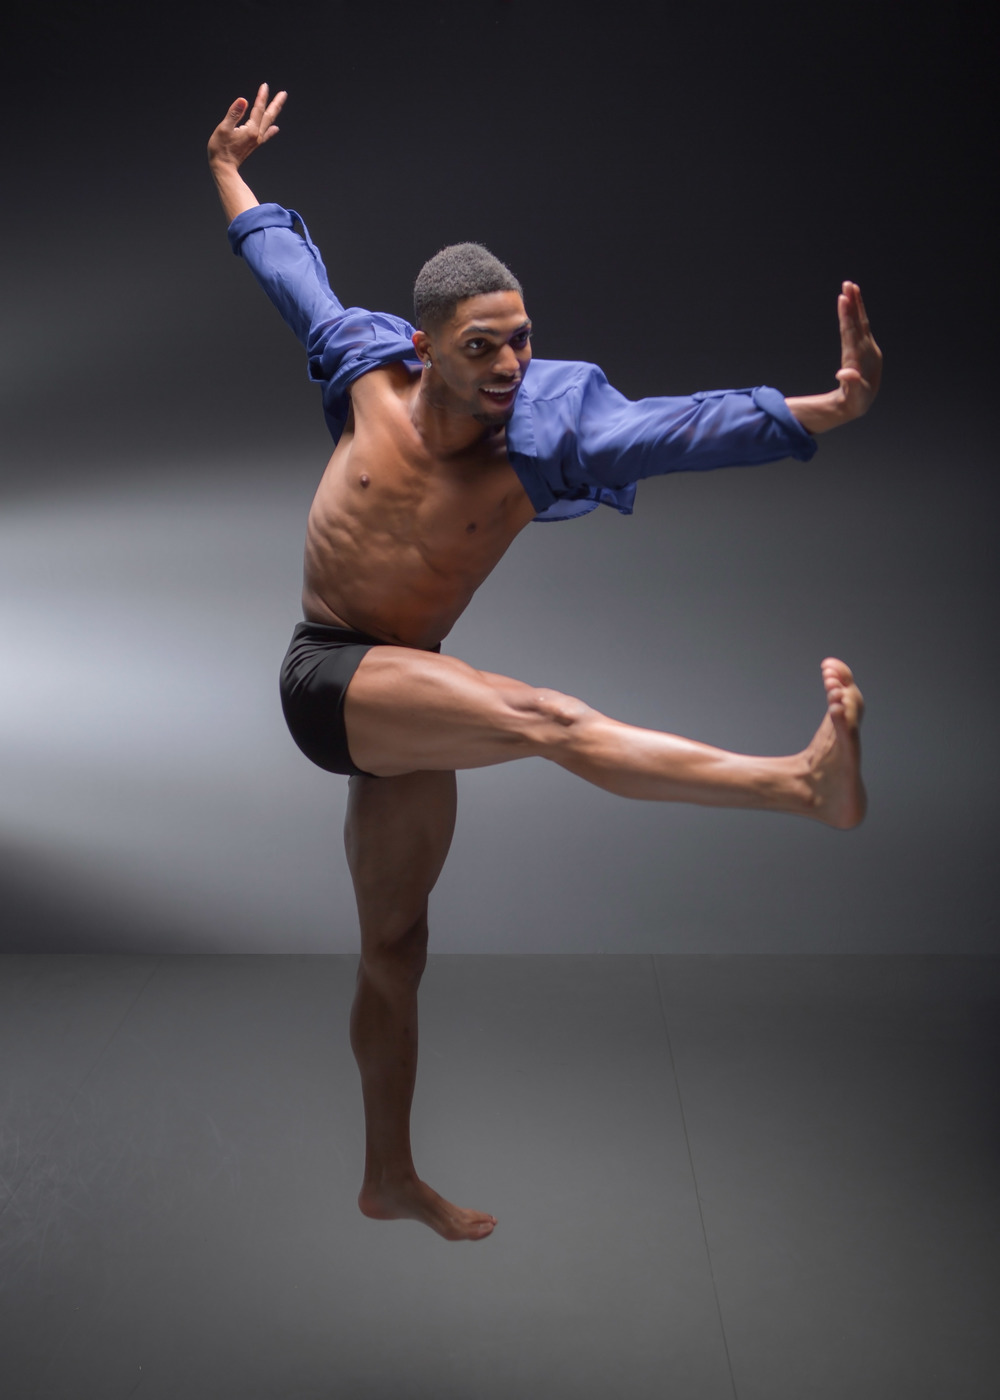 KERRY JACKSON is a native Houstonian started his professional training 6 years ago at the METdance Center with the MET too Youth Program. He has performed all around Houston and the United States and has received many astonishing awards such as a full scholarship to Point Park UniversitySummer Dance Program, Millennium Dancer Award from West Coast Dance Explosion, Jazz in AZ Dance Scholarship and Most Outstanding Choreography Award at the 2008 Black History Festival. Kerry has performed and worked with many great choreographers with METdance such as Larry Keigwin, Kiki Lucas, Marlana Doyle, Peter Chu, Sidra Bell, Kiesha Lalama, jhon r stronks Julie Fox, Jason McDole, Erin Reck, Jane Weiner, Robbie Moore, Ricky Ruiz, Steven Vaughn, Lauren Edson and Kate Skarpetowska. Kerry has been featured most recently in Kiki Lucas and Jess Hendricks on the company and has been photographed by Houston photographers Ben Doyle, Amitava Shankar and Jacob's Pillow Dance Festival  in Dance Workshop series. He has performed at Houston Press's Artopia event, Bayou City Arts Festival, Grier School Gala, Texas A& M International University, Dance Gallery Dance Festival, Association of Performing Arts Presenters (APAP) Conference in New York, Boston Contemporary Dance Festival, Barefoot Brigade, Spring into Dance Festival in St. Louis, Jacob's Pillow Inside/Out Dance Series in 2012 and 2014 in Massachusetts, Dance Under the Stars Choreography Festival in Palm Desert, CA., Julydoscope with the Cinema Arts Festival, Dallas Dance Festival and Austin Dance Festival. Kerry teaches, choreographs and volunteers throughout Houston and this will be his sixth year as Poe elementary fine arts career day speaker. Kerry was on the magazine cover on the Aug-Sept issue of the Dallas Dance Fest Festival 2015. This is his sixth season with the METdance and is proud to be a company member.